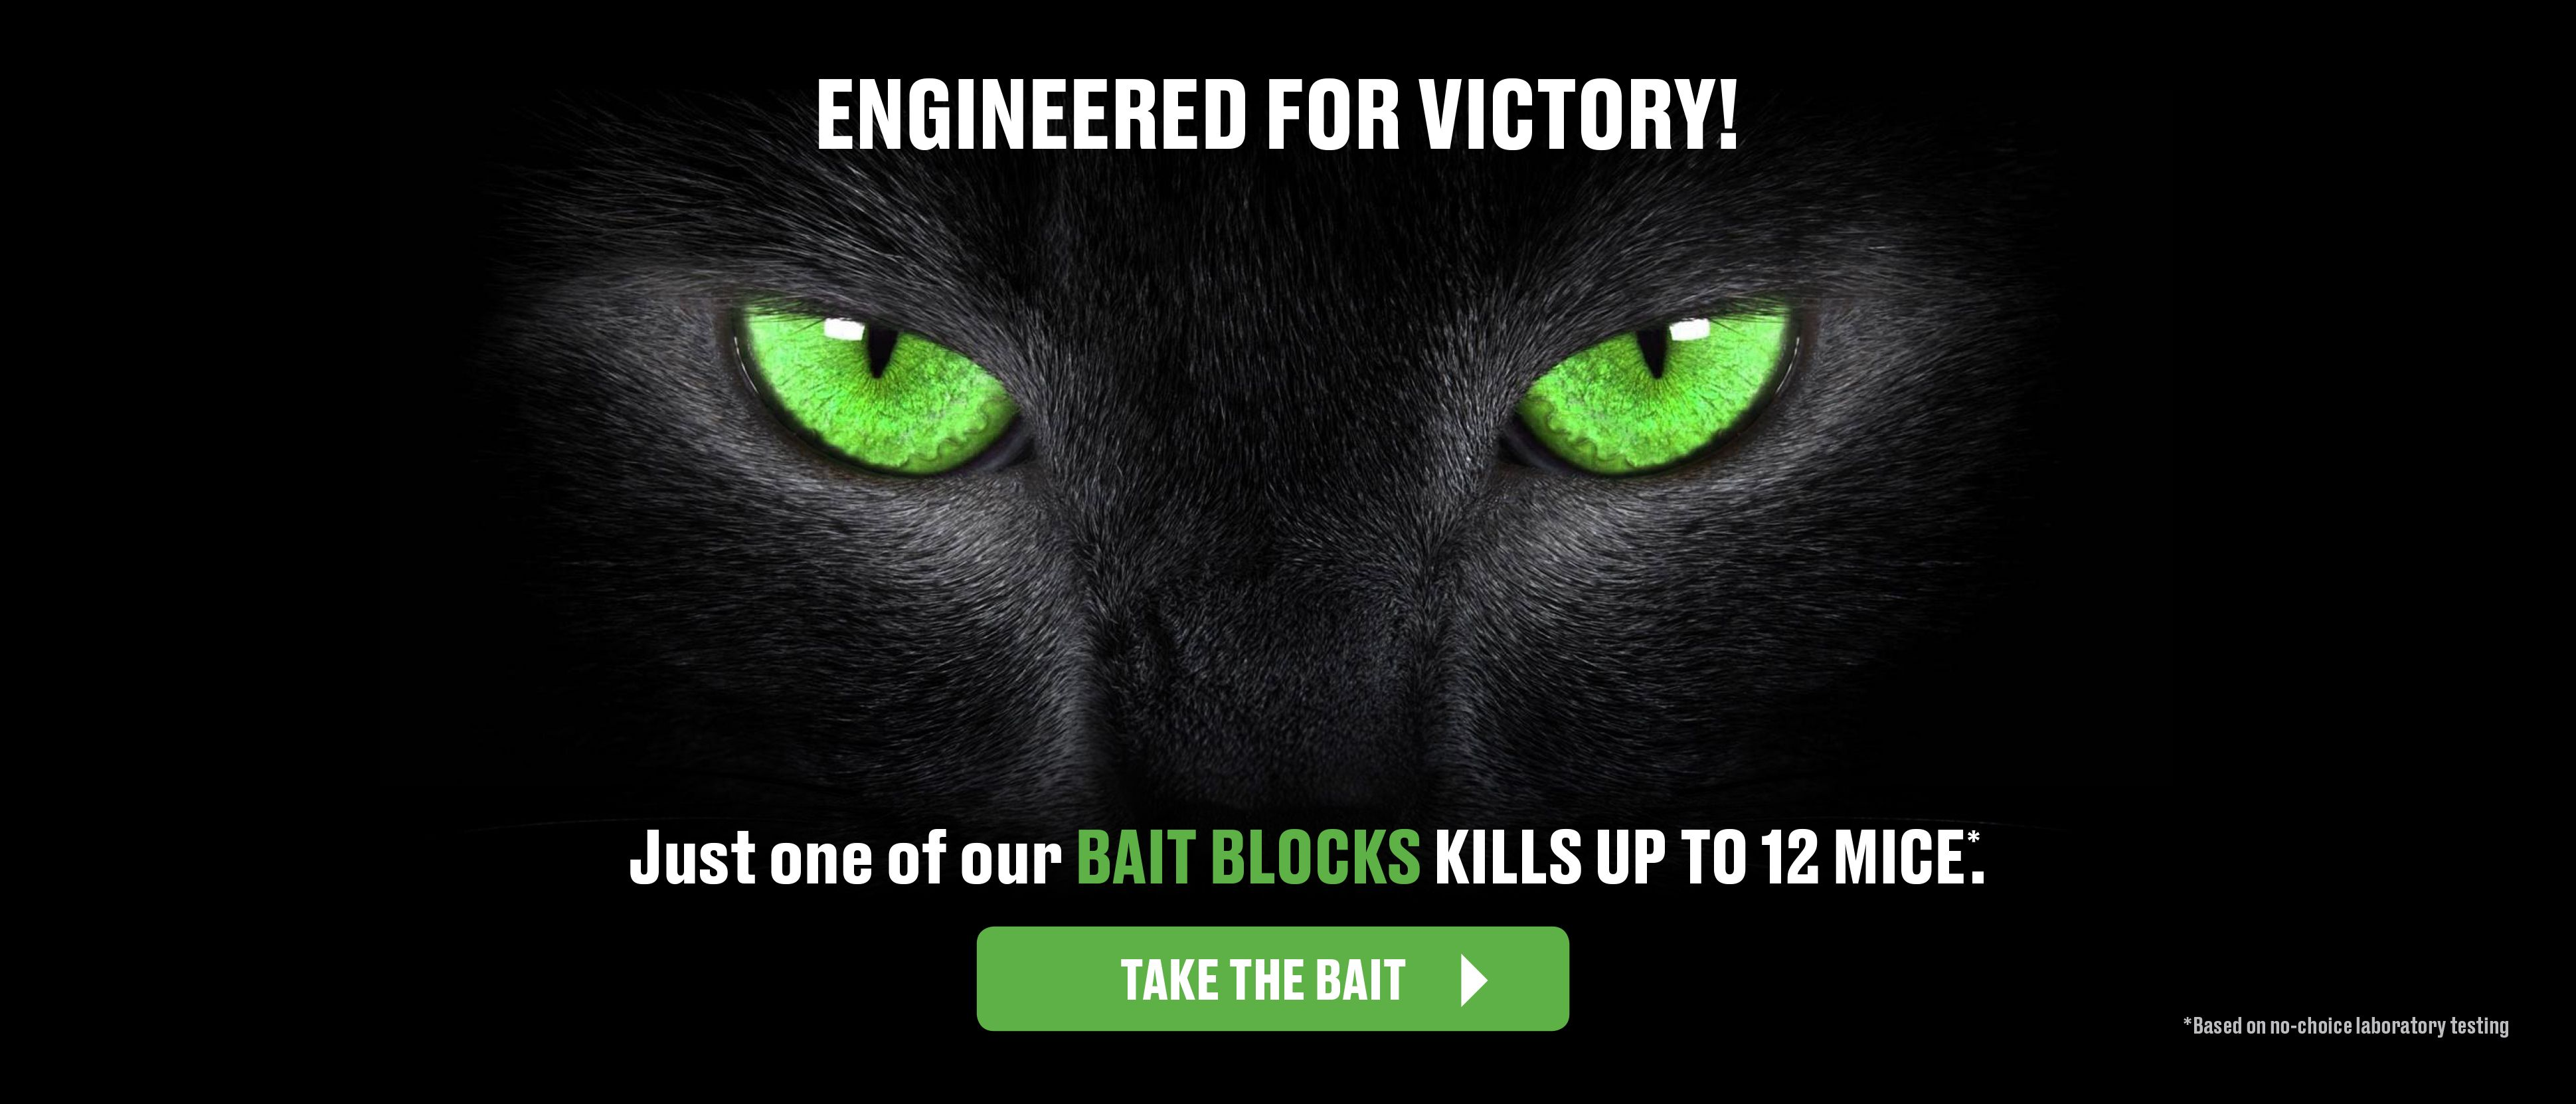 Black Cat with Green Eyes - Caption - Engineered For Victory - Just One of our Bait Blocks Kills Up To 12 Mice Take The Bait